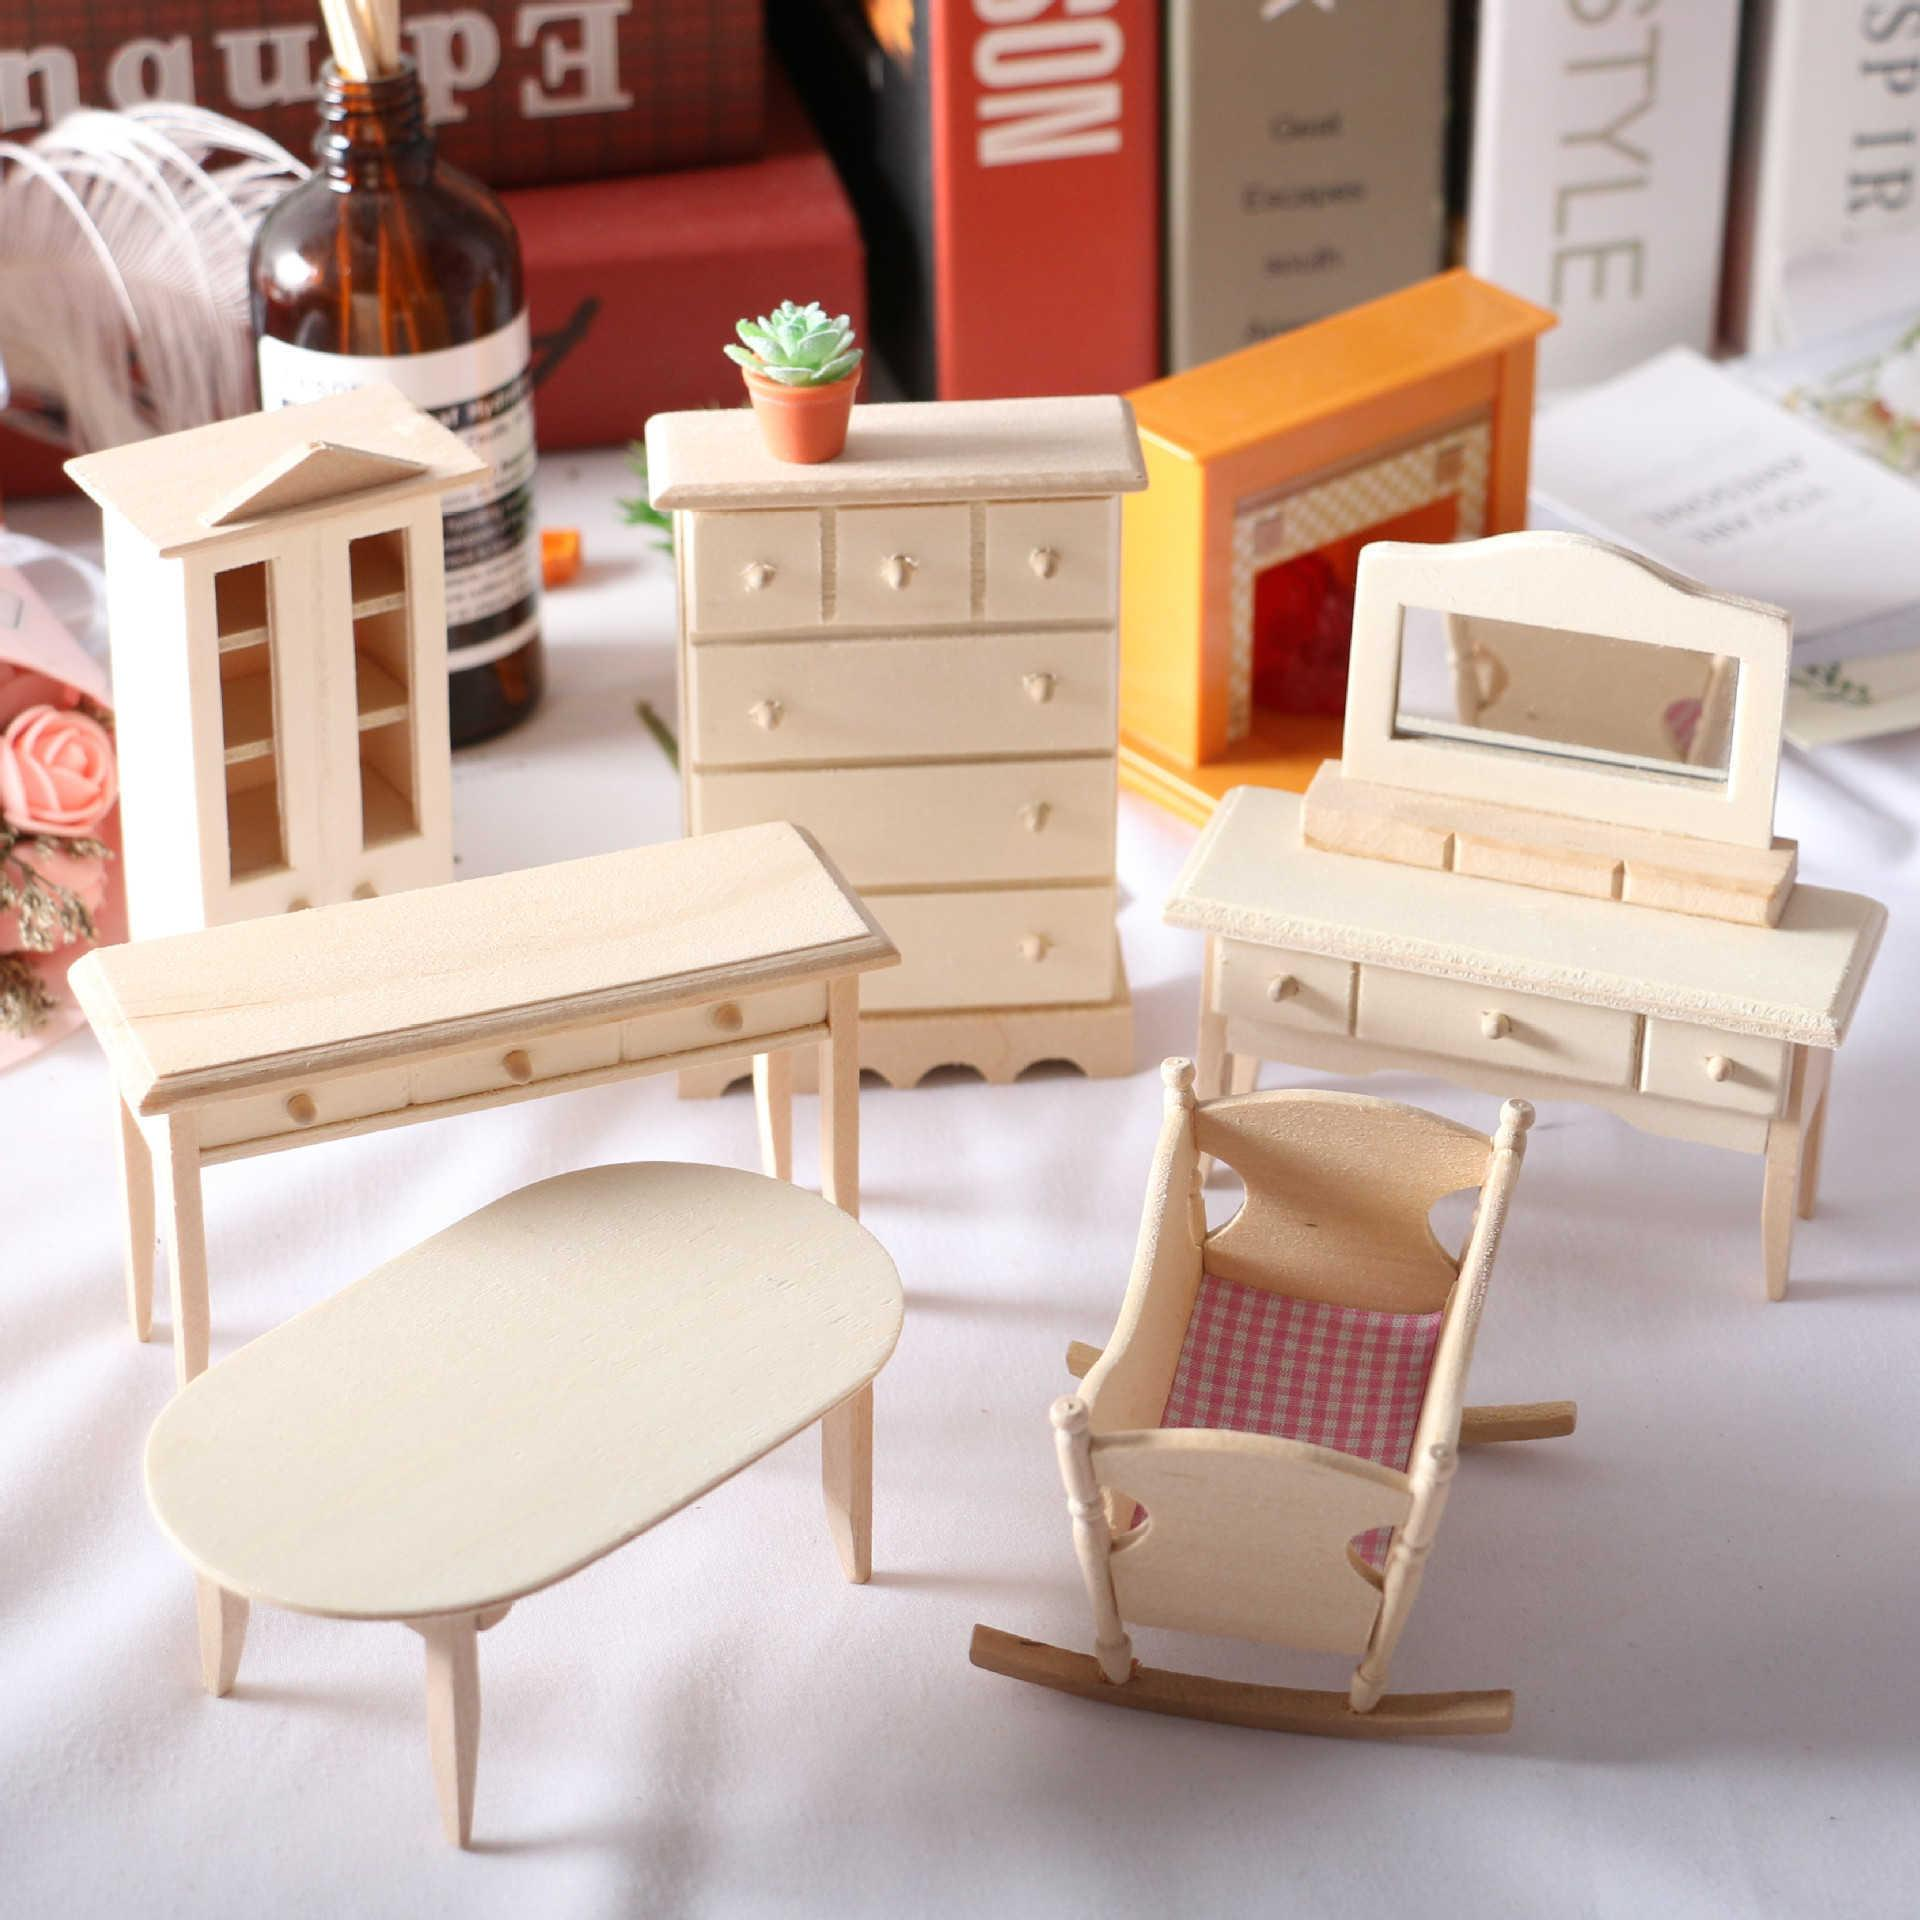 Doll mini solid wood furniture cradle crib dining table cabinet small cloth doll house BJD toys